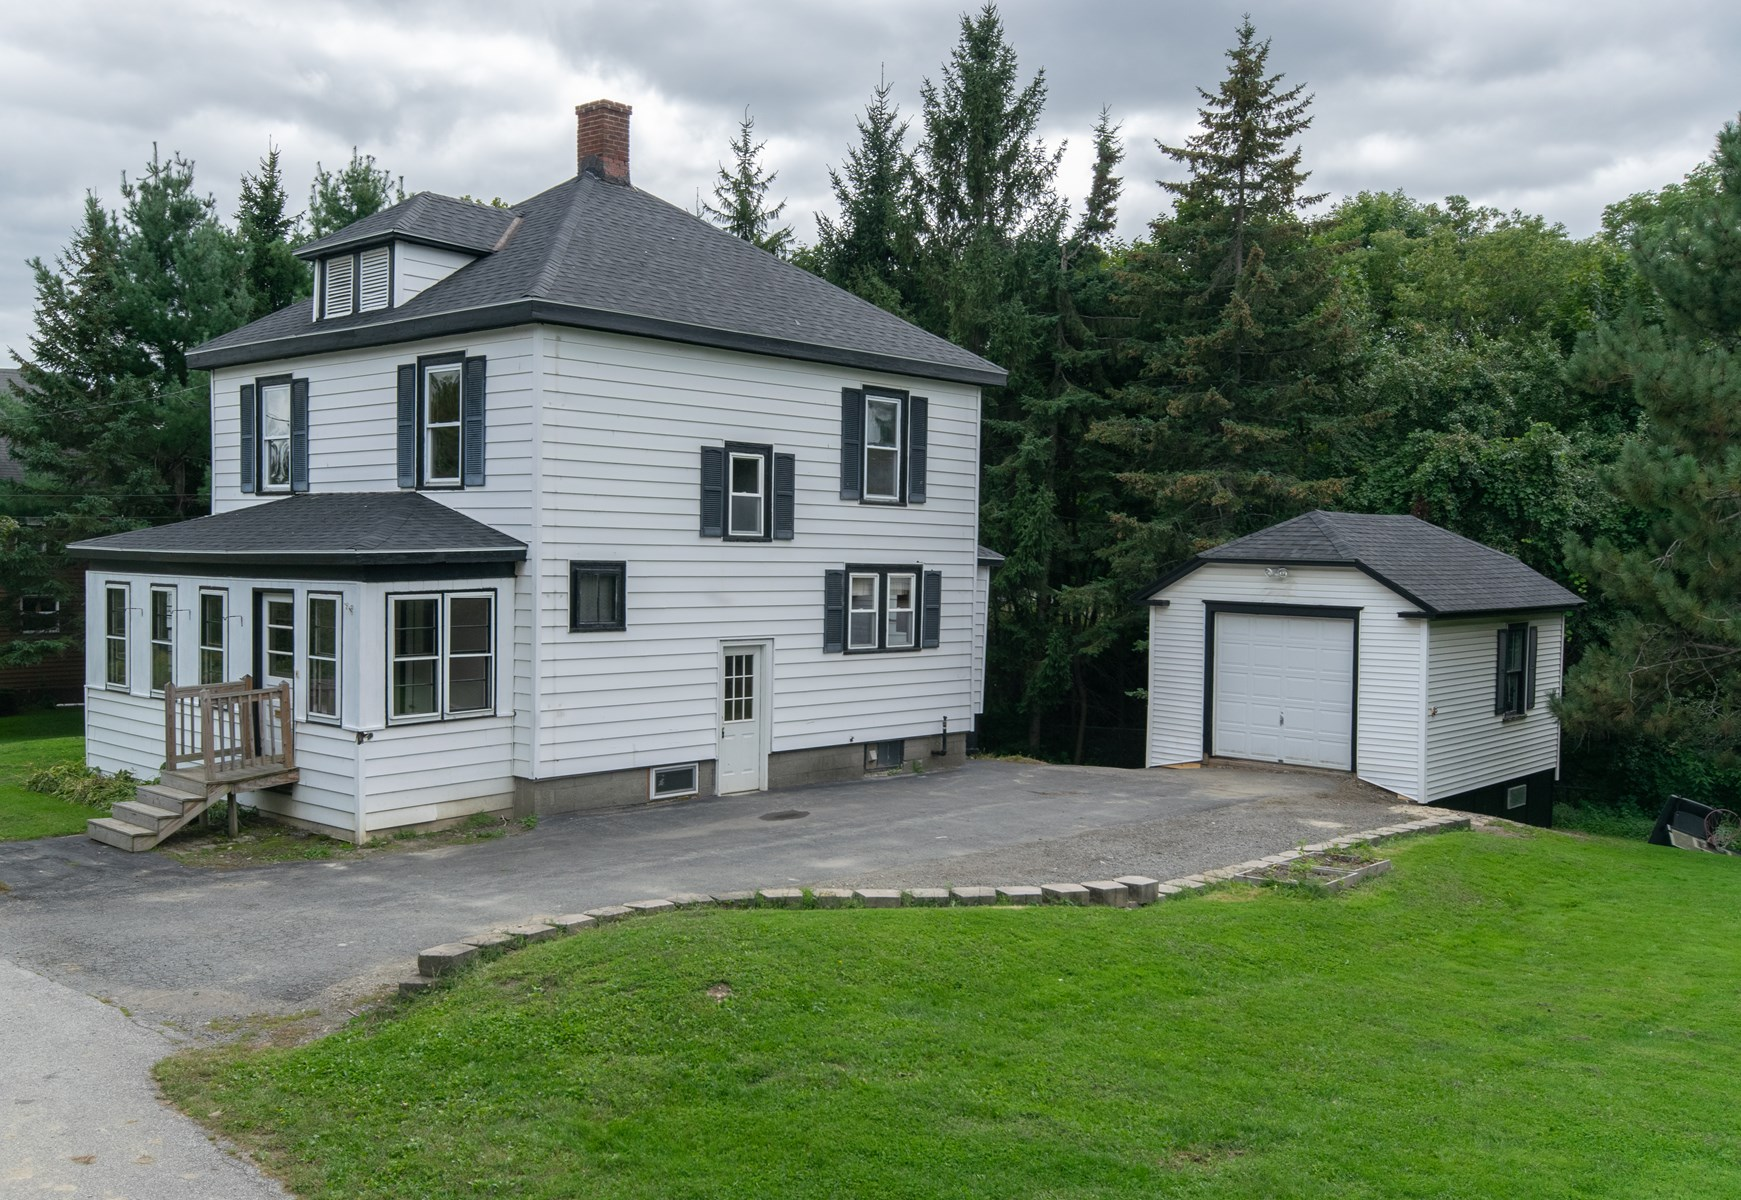 Historic Home For Sale in Bangor, Maine